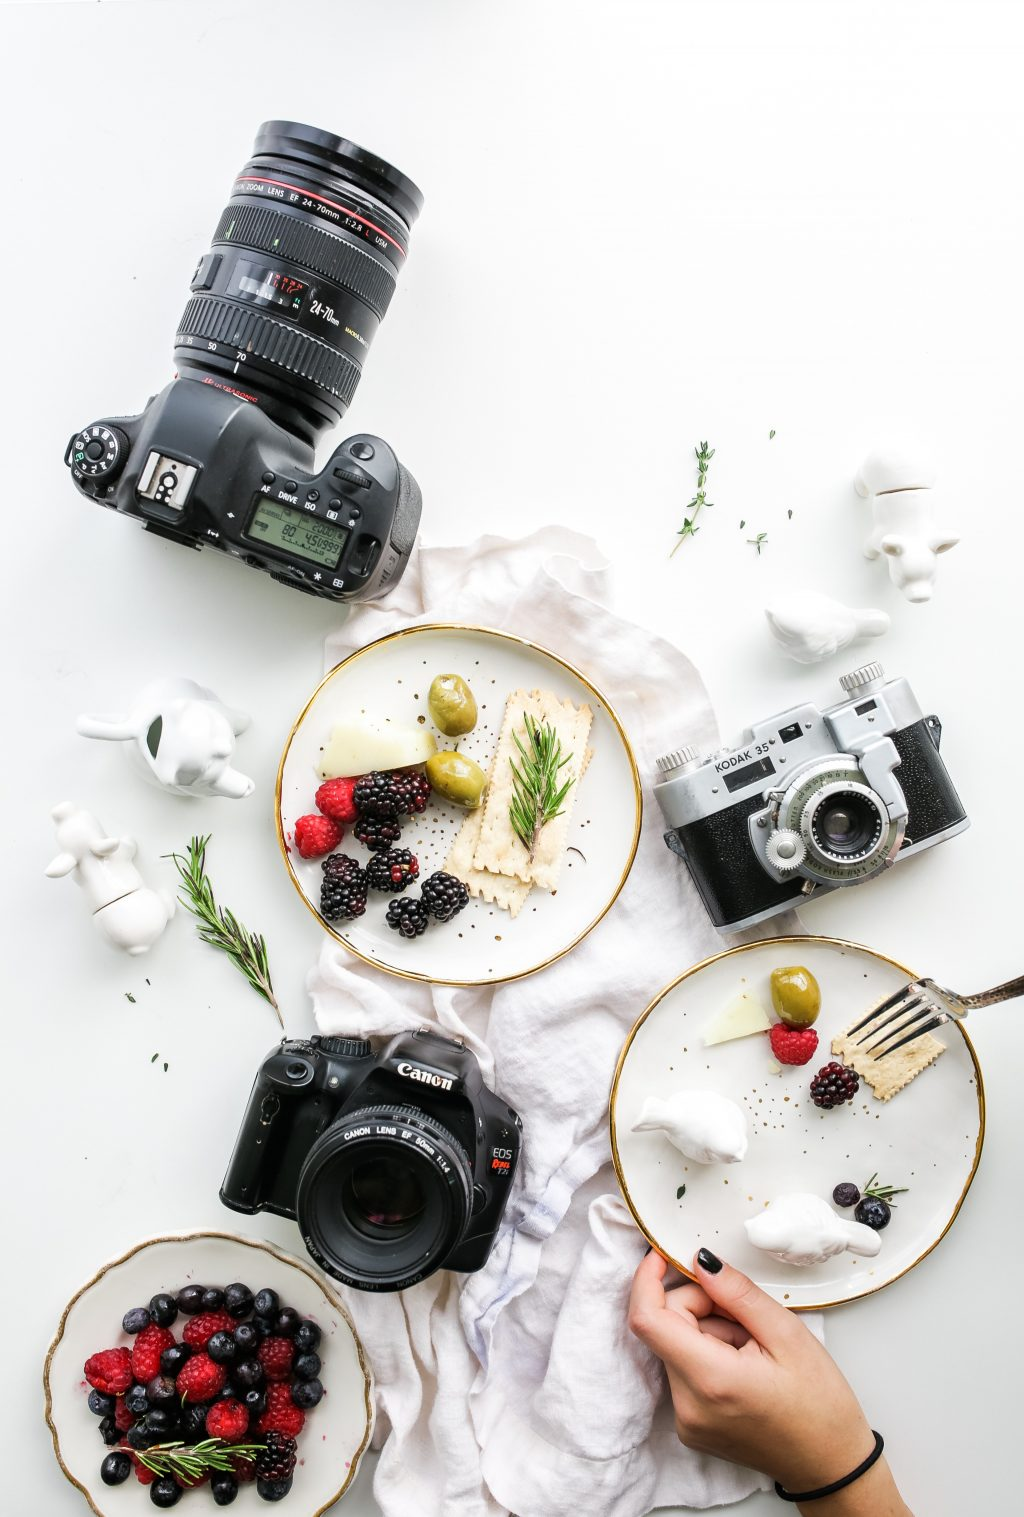 food photography brooke lark 158027-unsplash